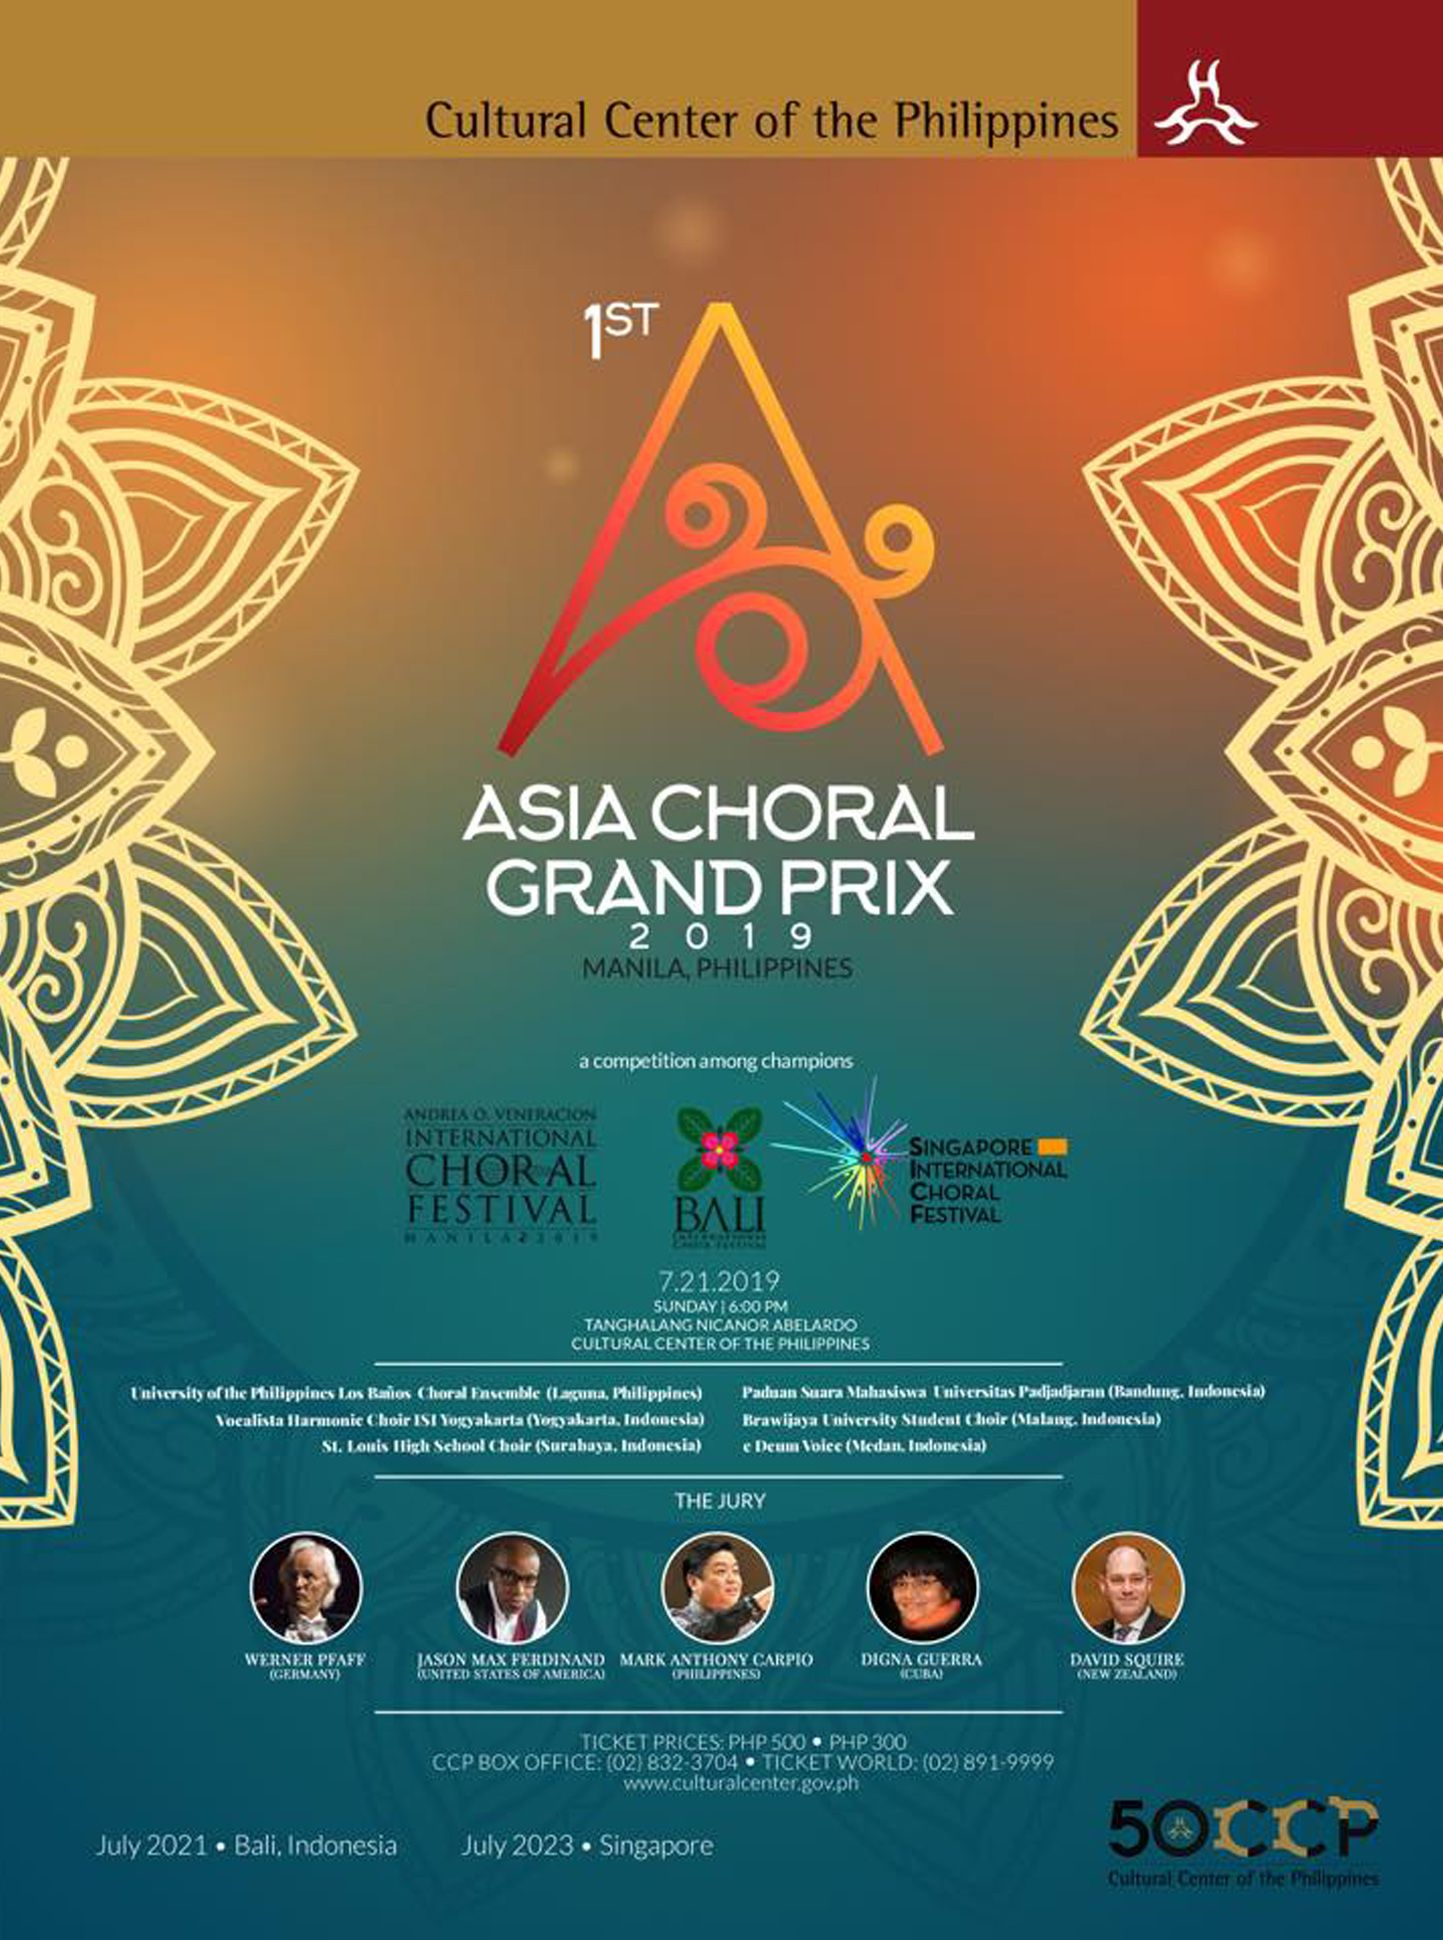 1st Asia Choral Grand Prix Is Finally Happening This July 2019